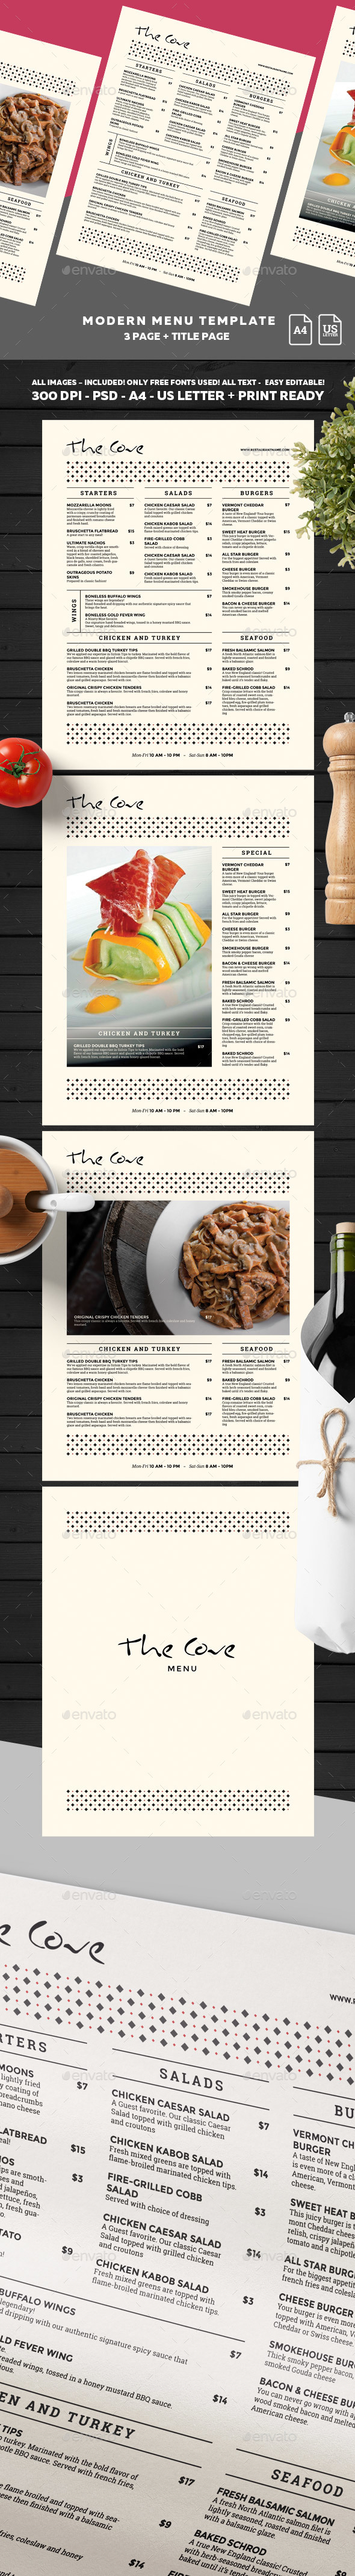 Menu Template - Food Menus Print Templates